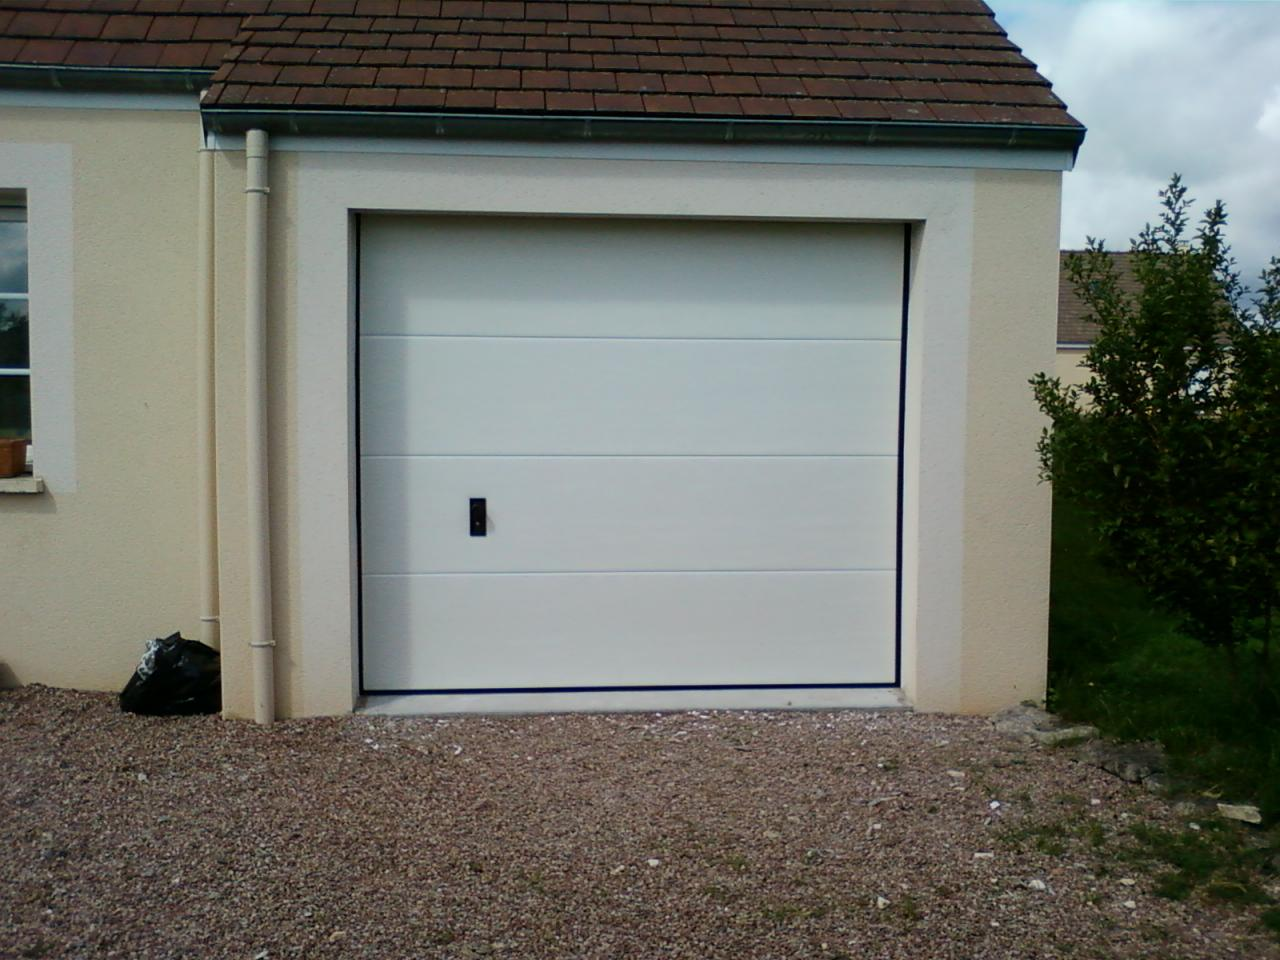 Portes de garage sectionnelle - Pose d une porte de garage sectionnelle ...